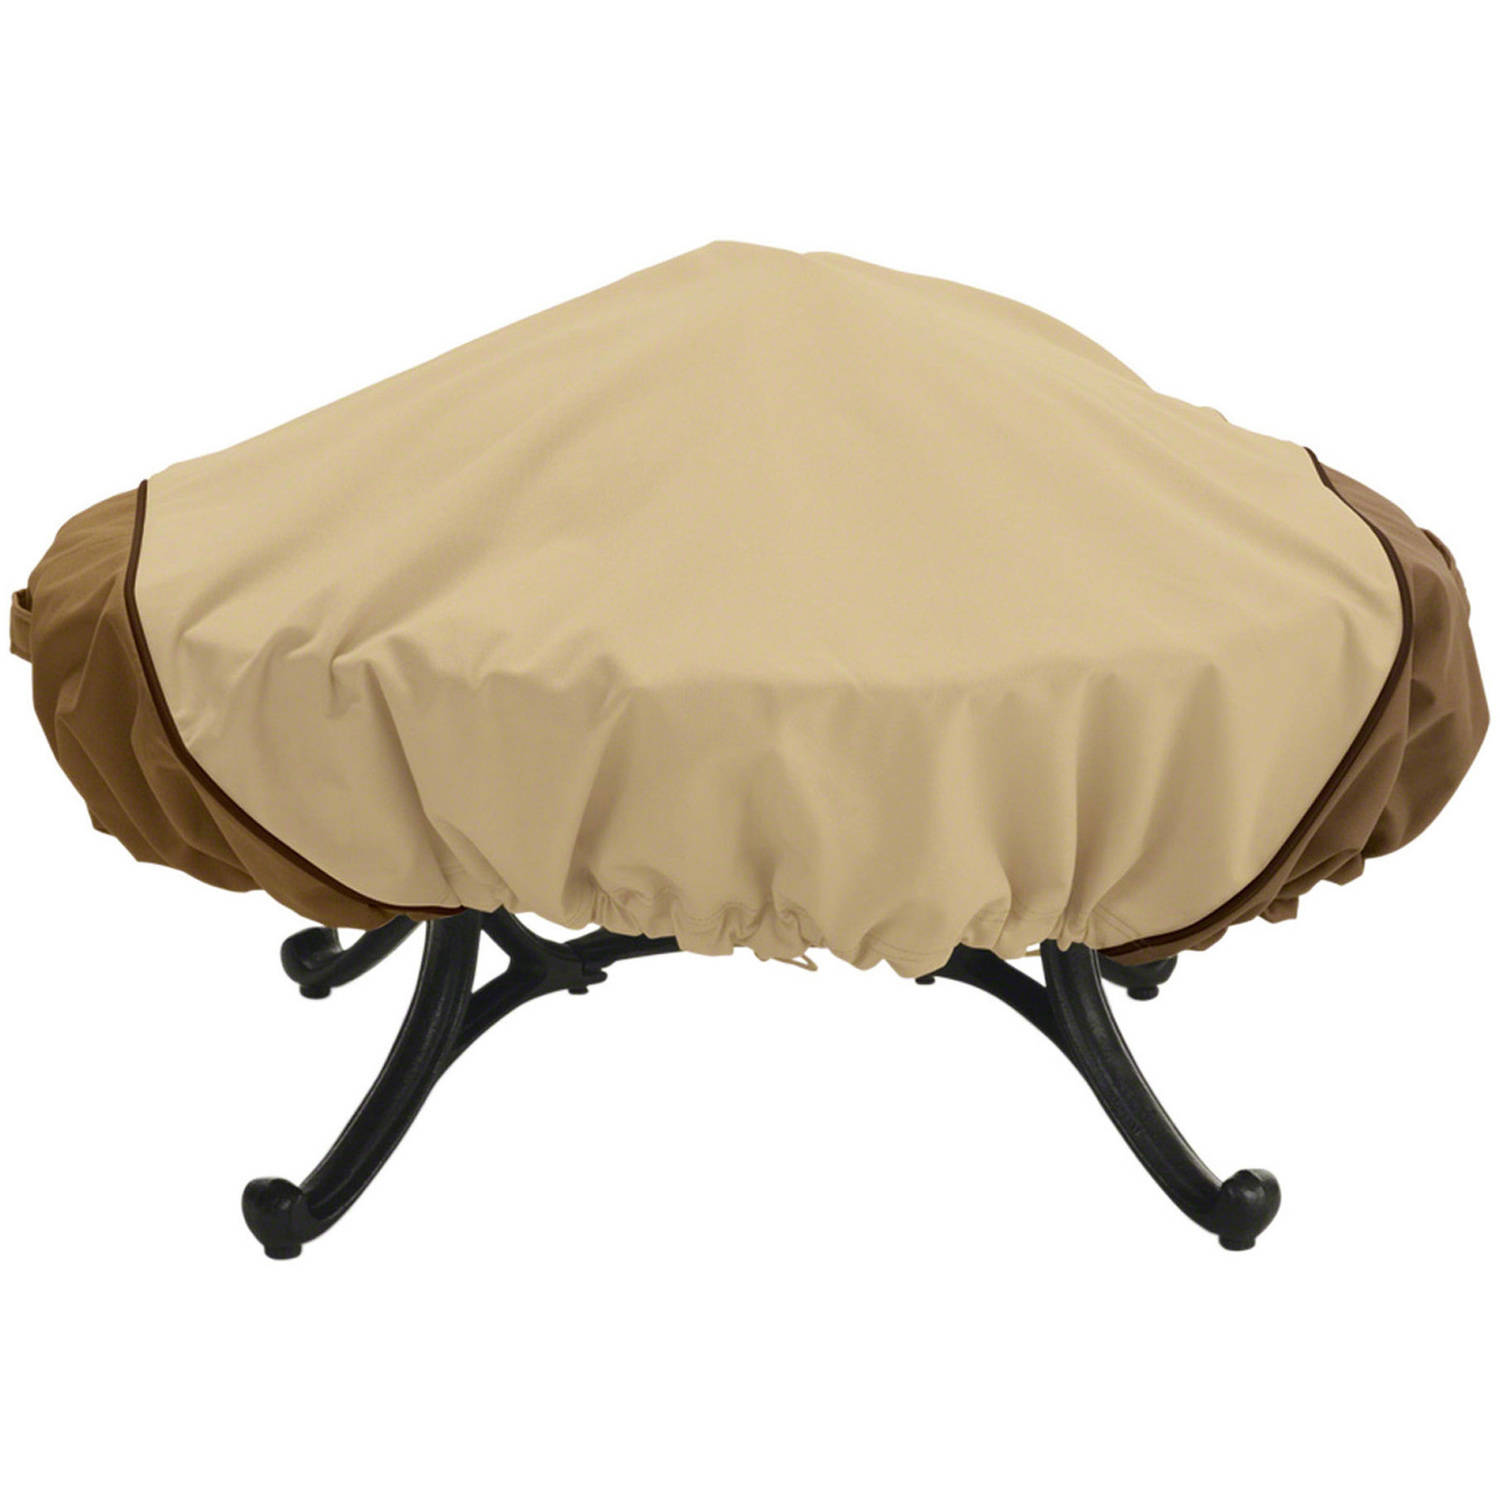 "Classic Accessories Veranda Patio Fire Pit Cover, Round, fits up to 60"" diameter"